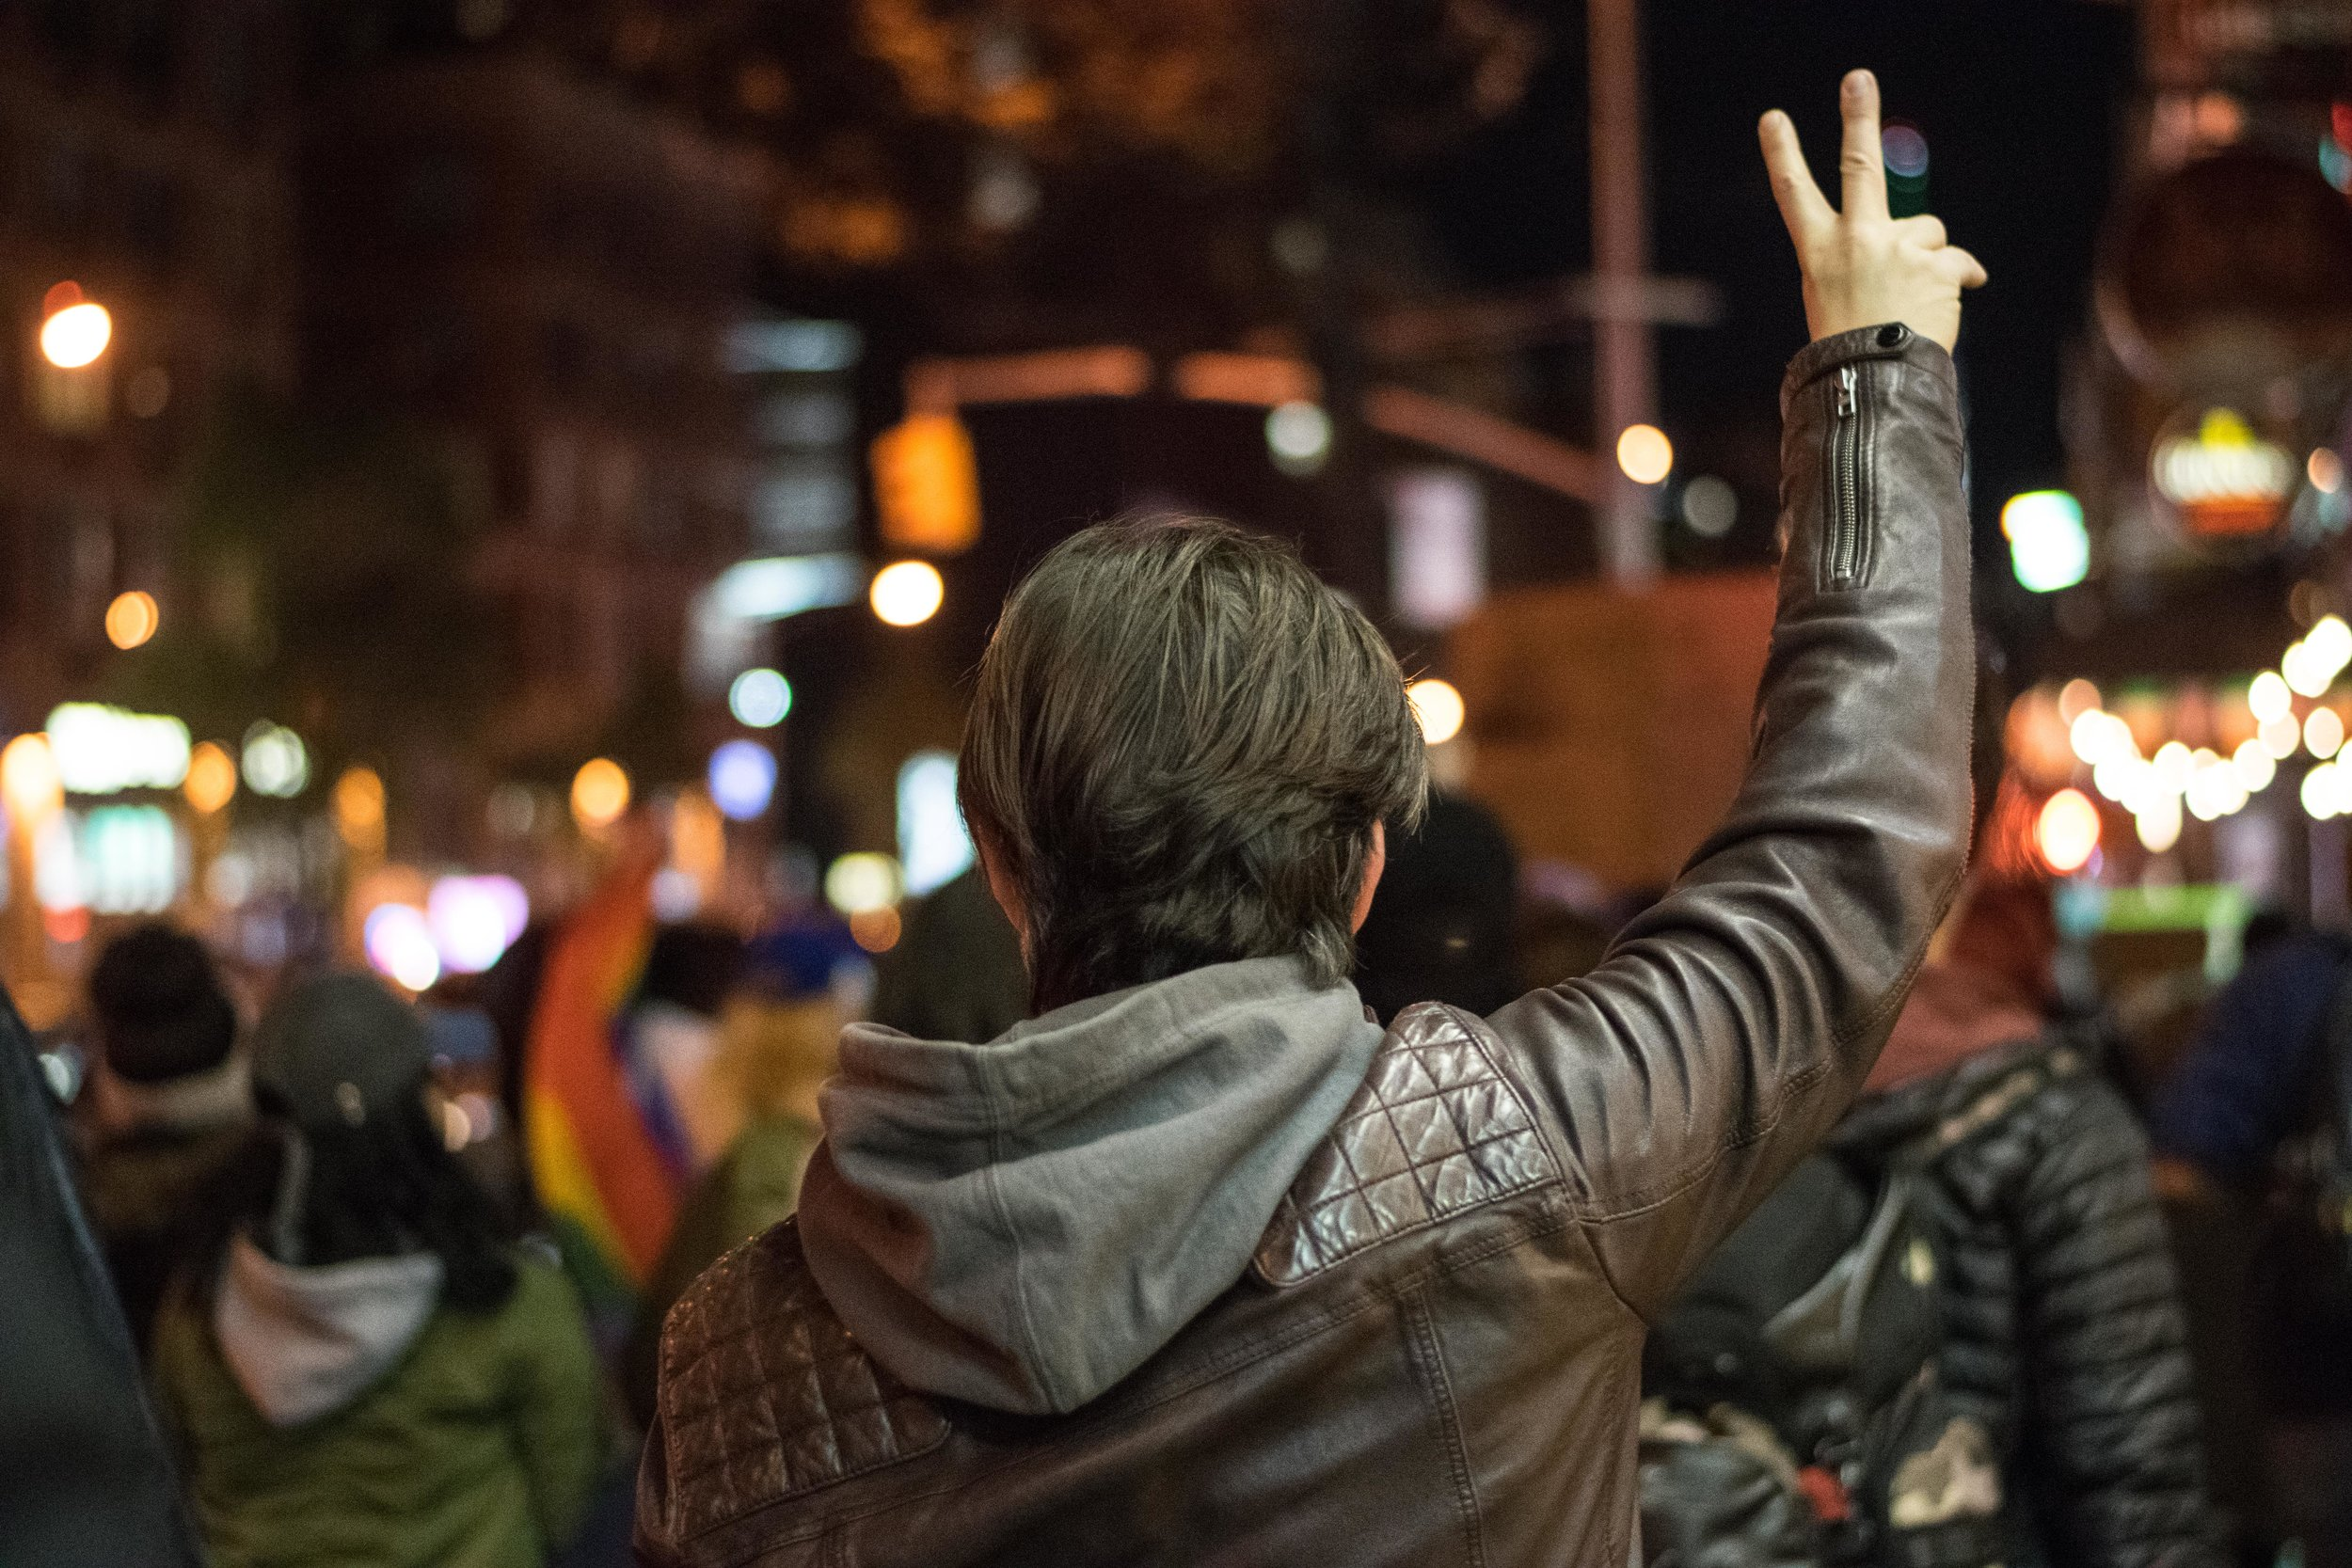 2016-NYC-New-York-Trump-Protest-March-Man-White-With-Leather-jacket-arm-held-up-fingers-hand-peace-sign